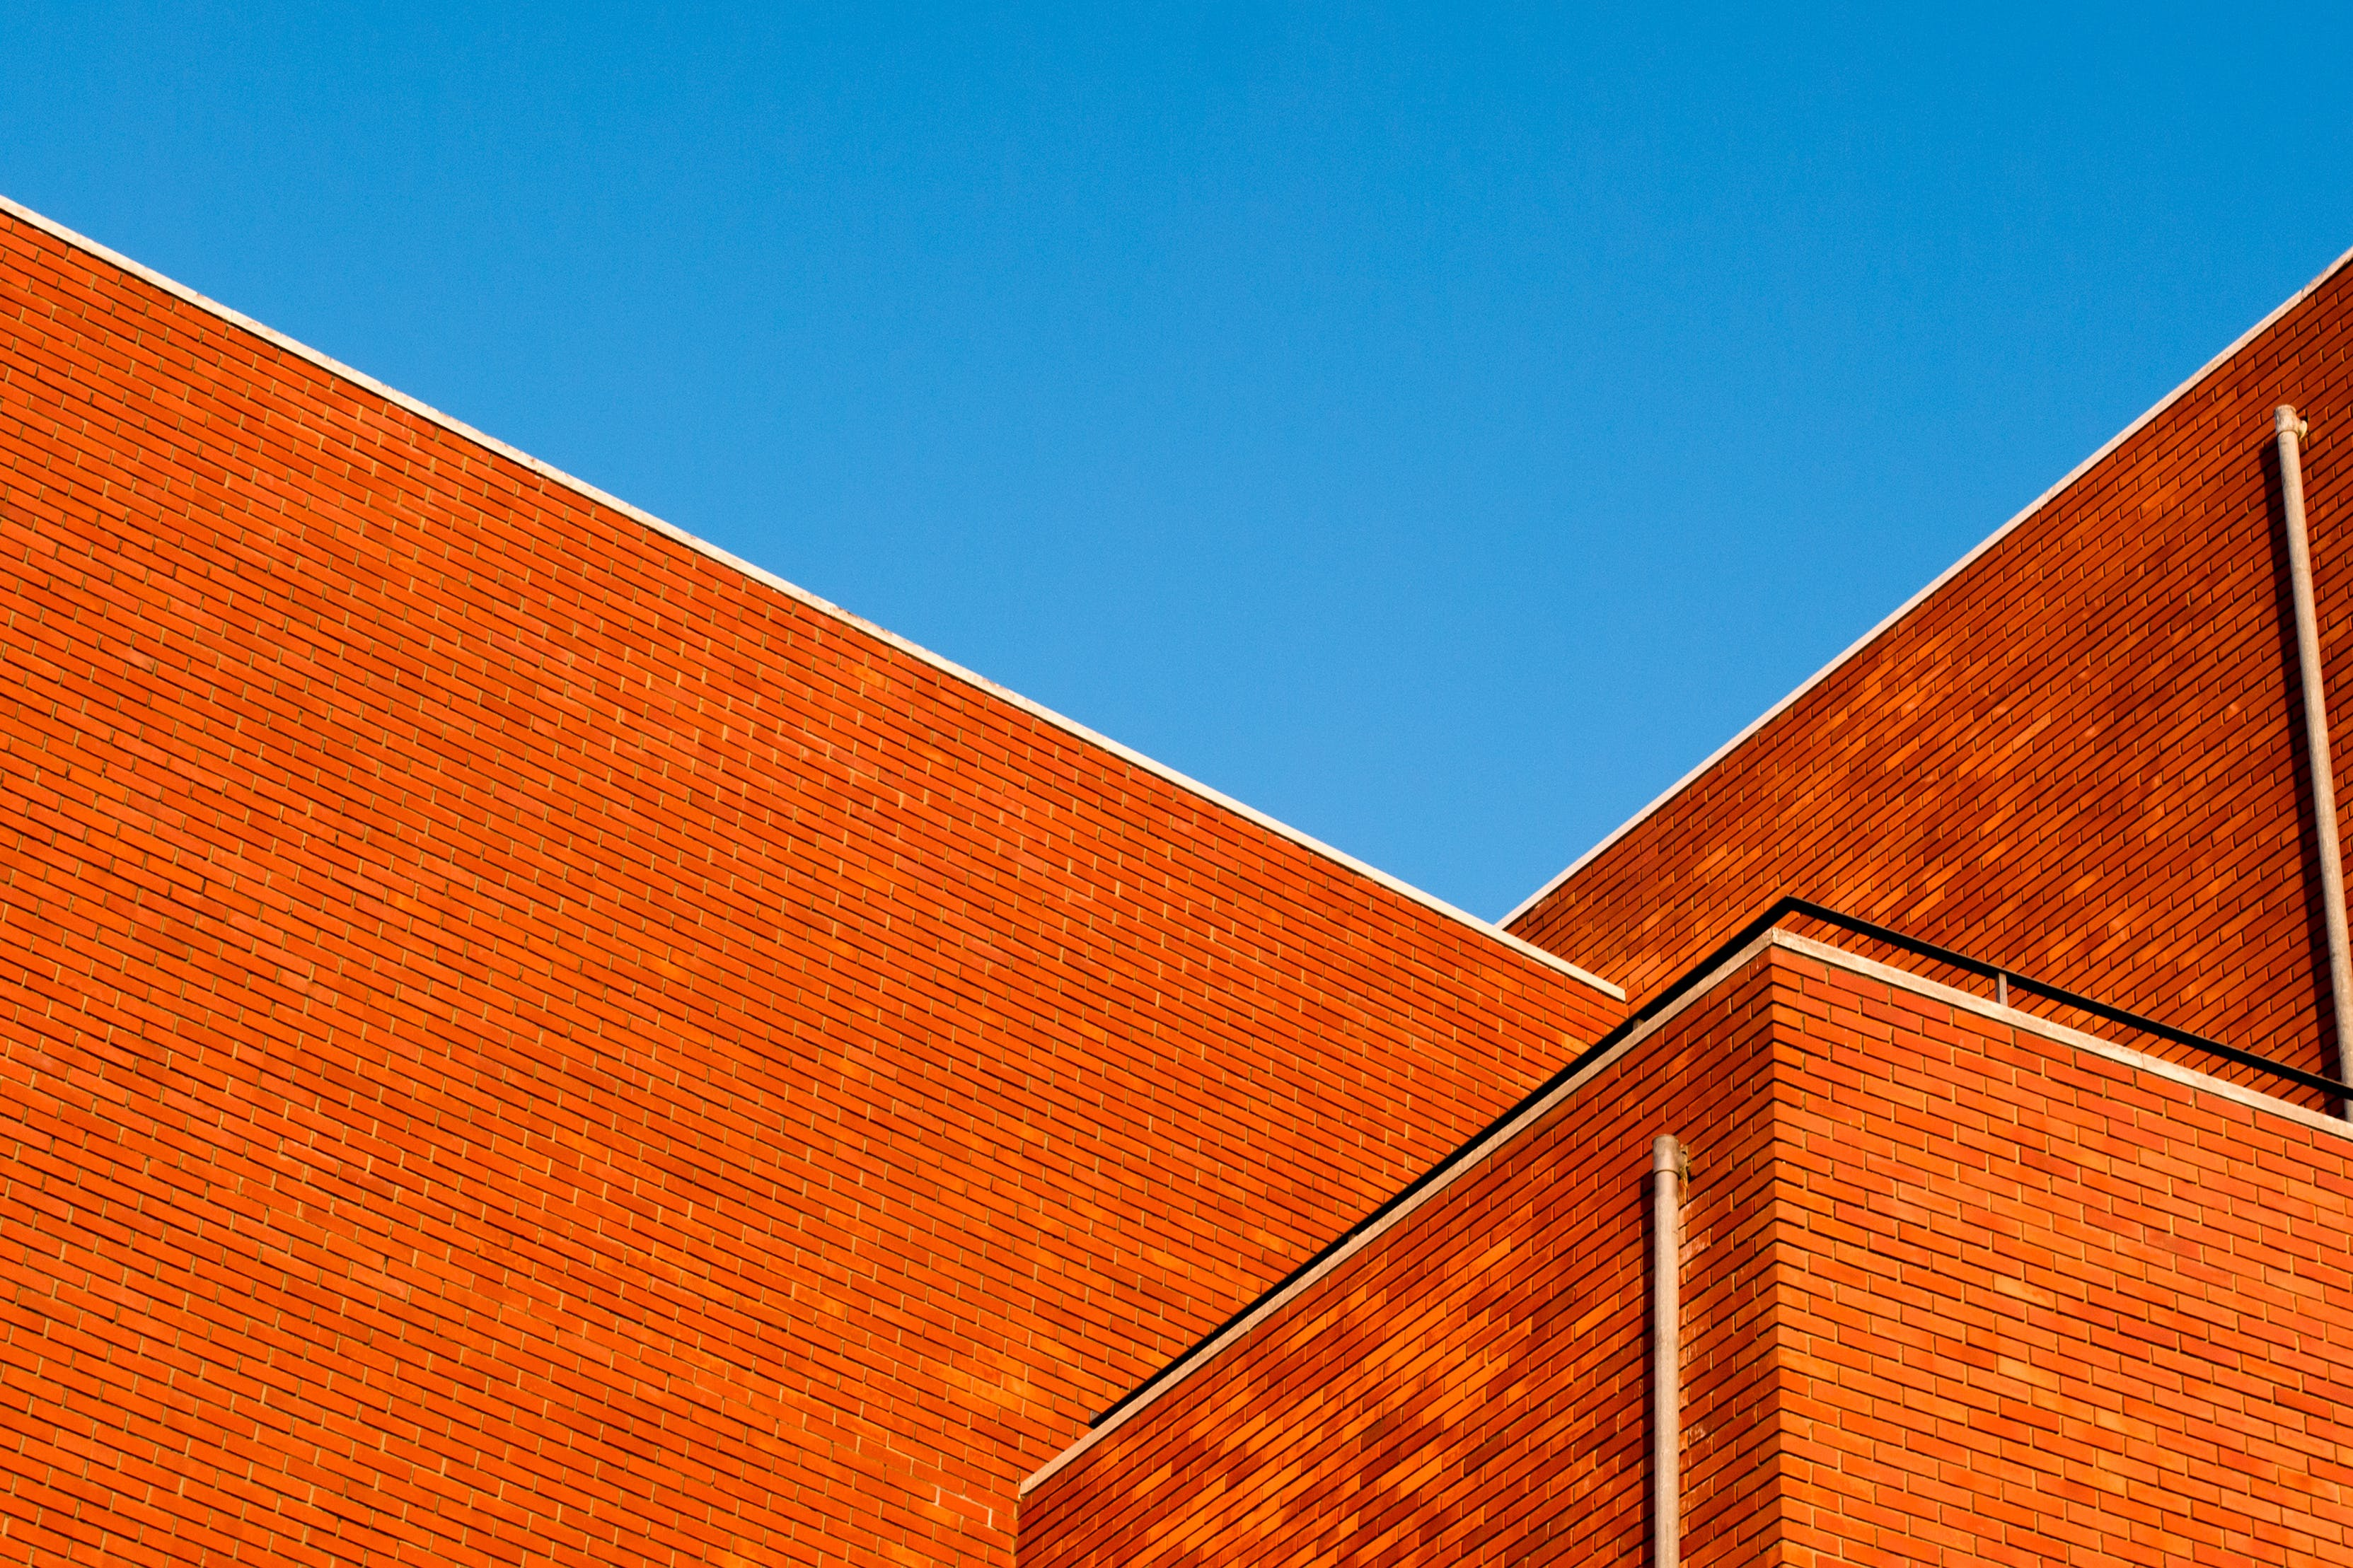 Royalty free images of sky, building, construction, bricks